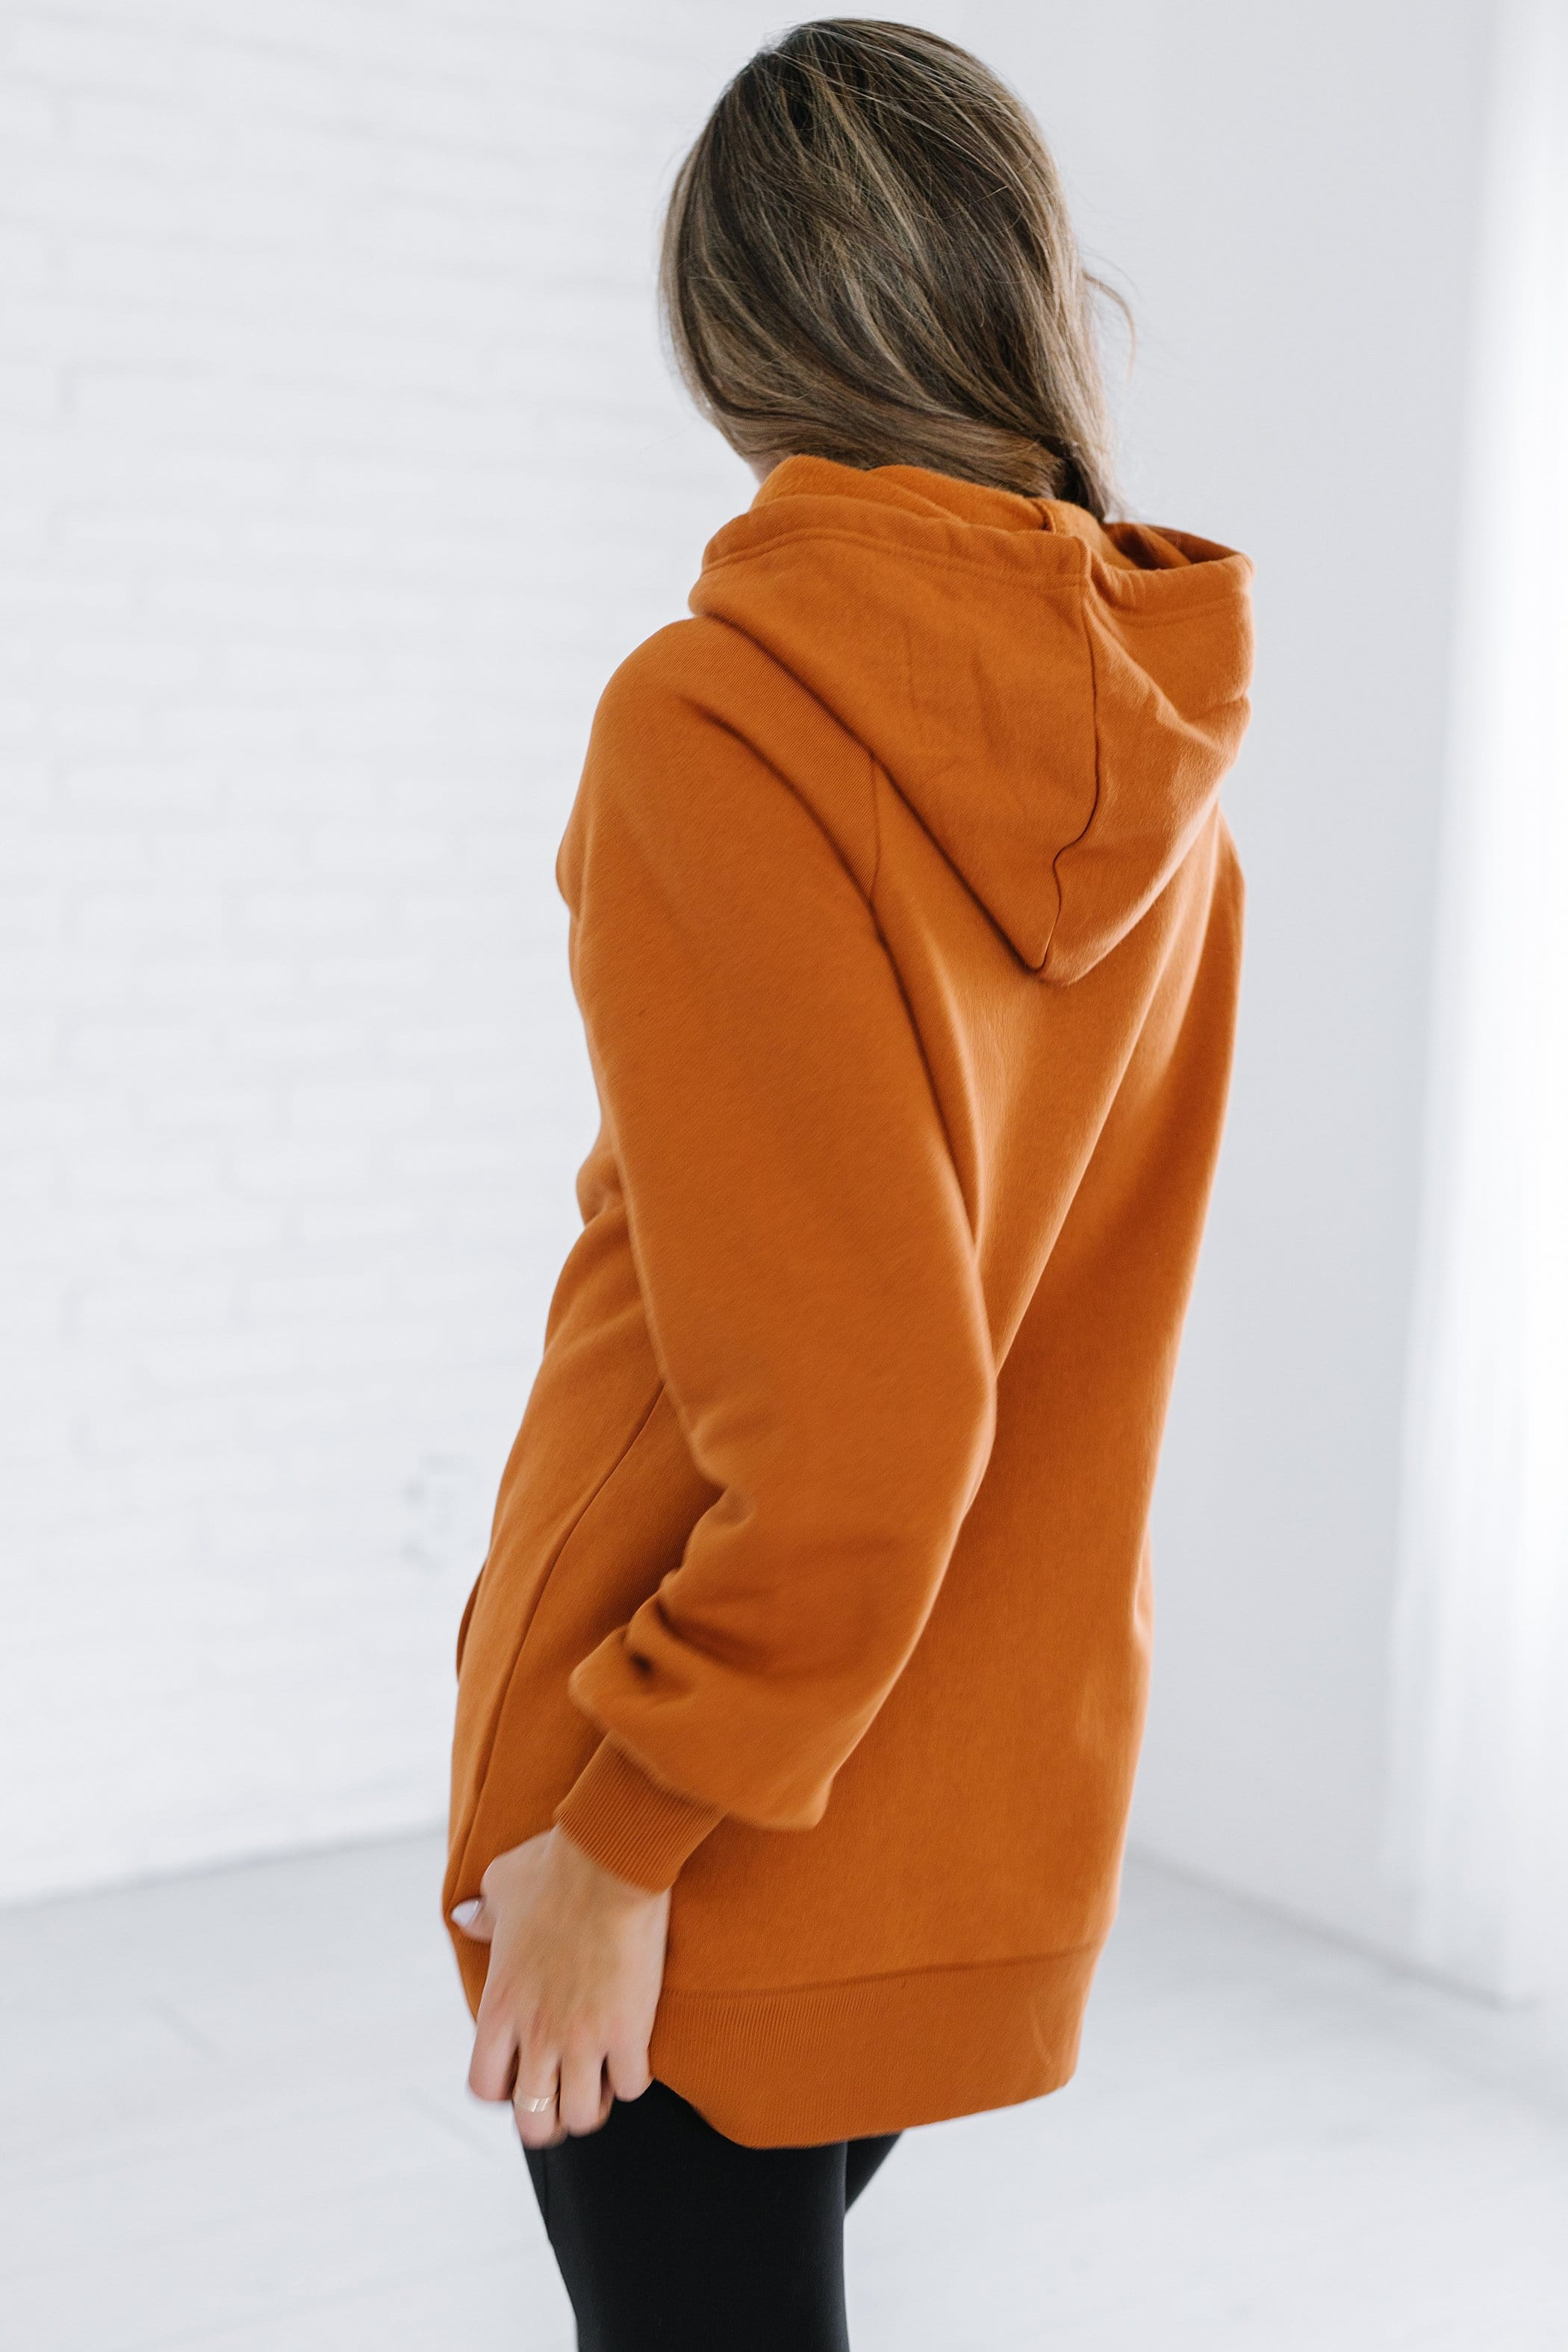 The Hillburn Side Tie Hoodie in Almond